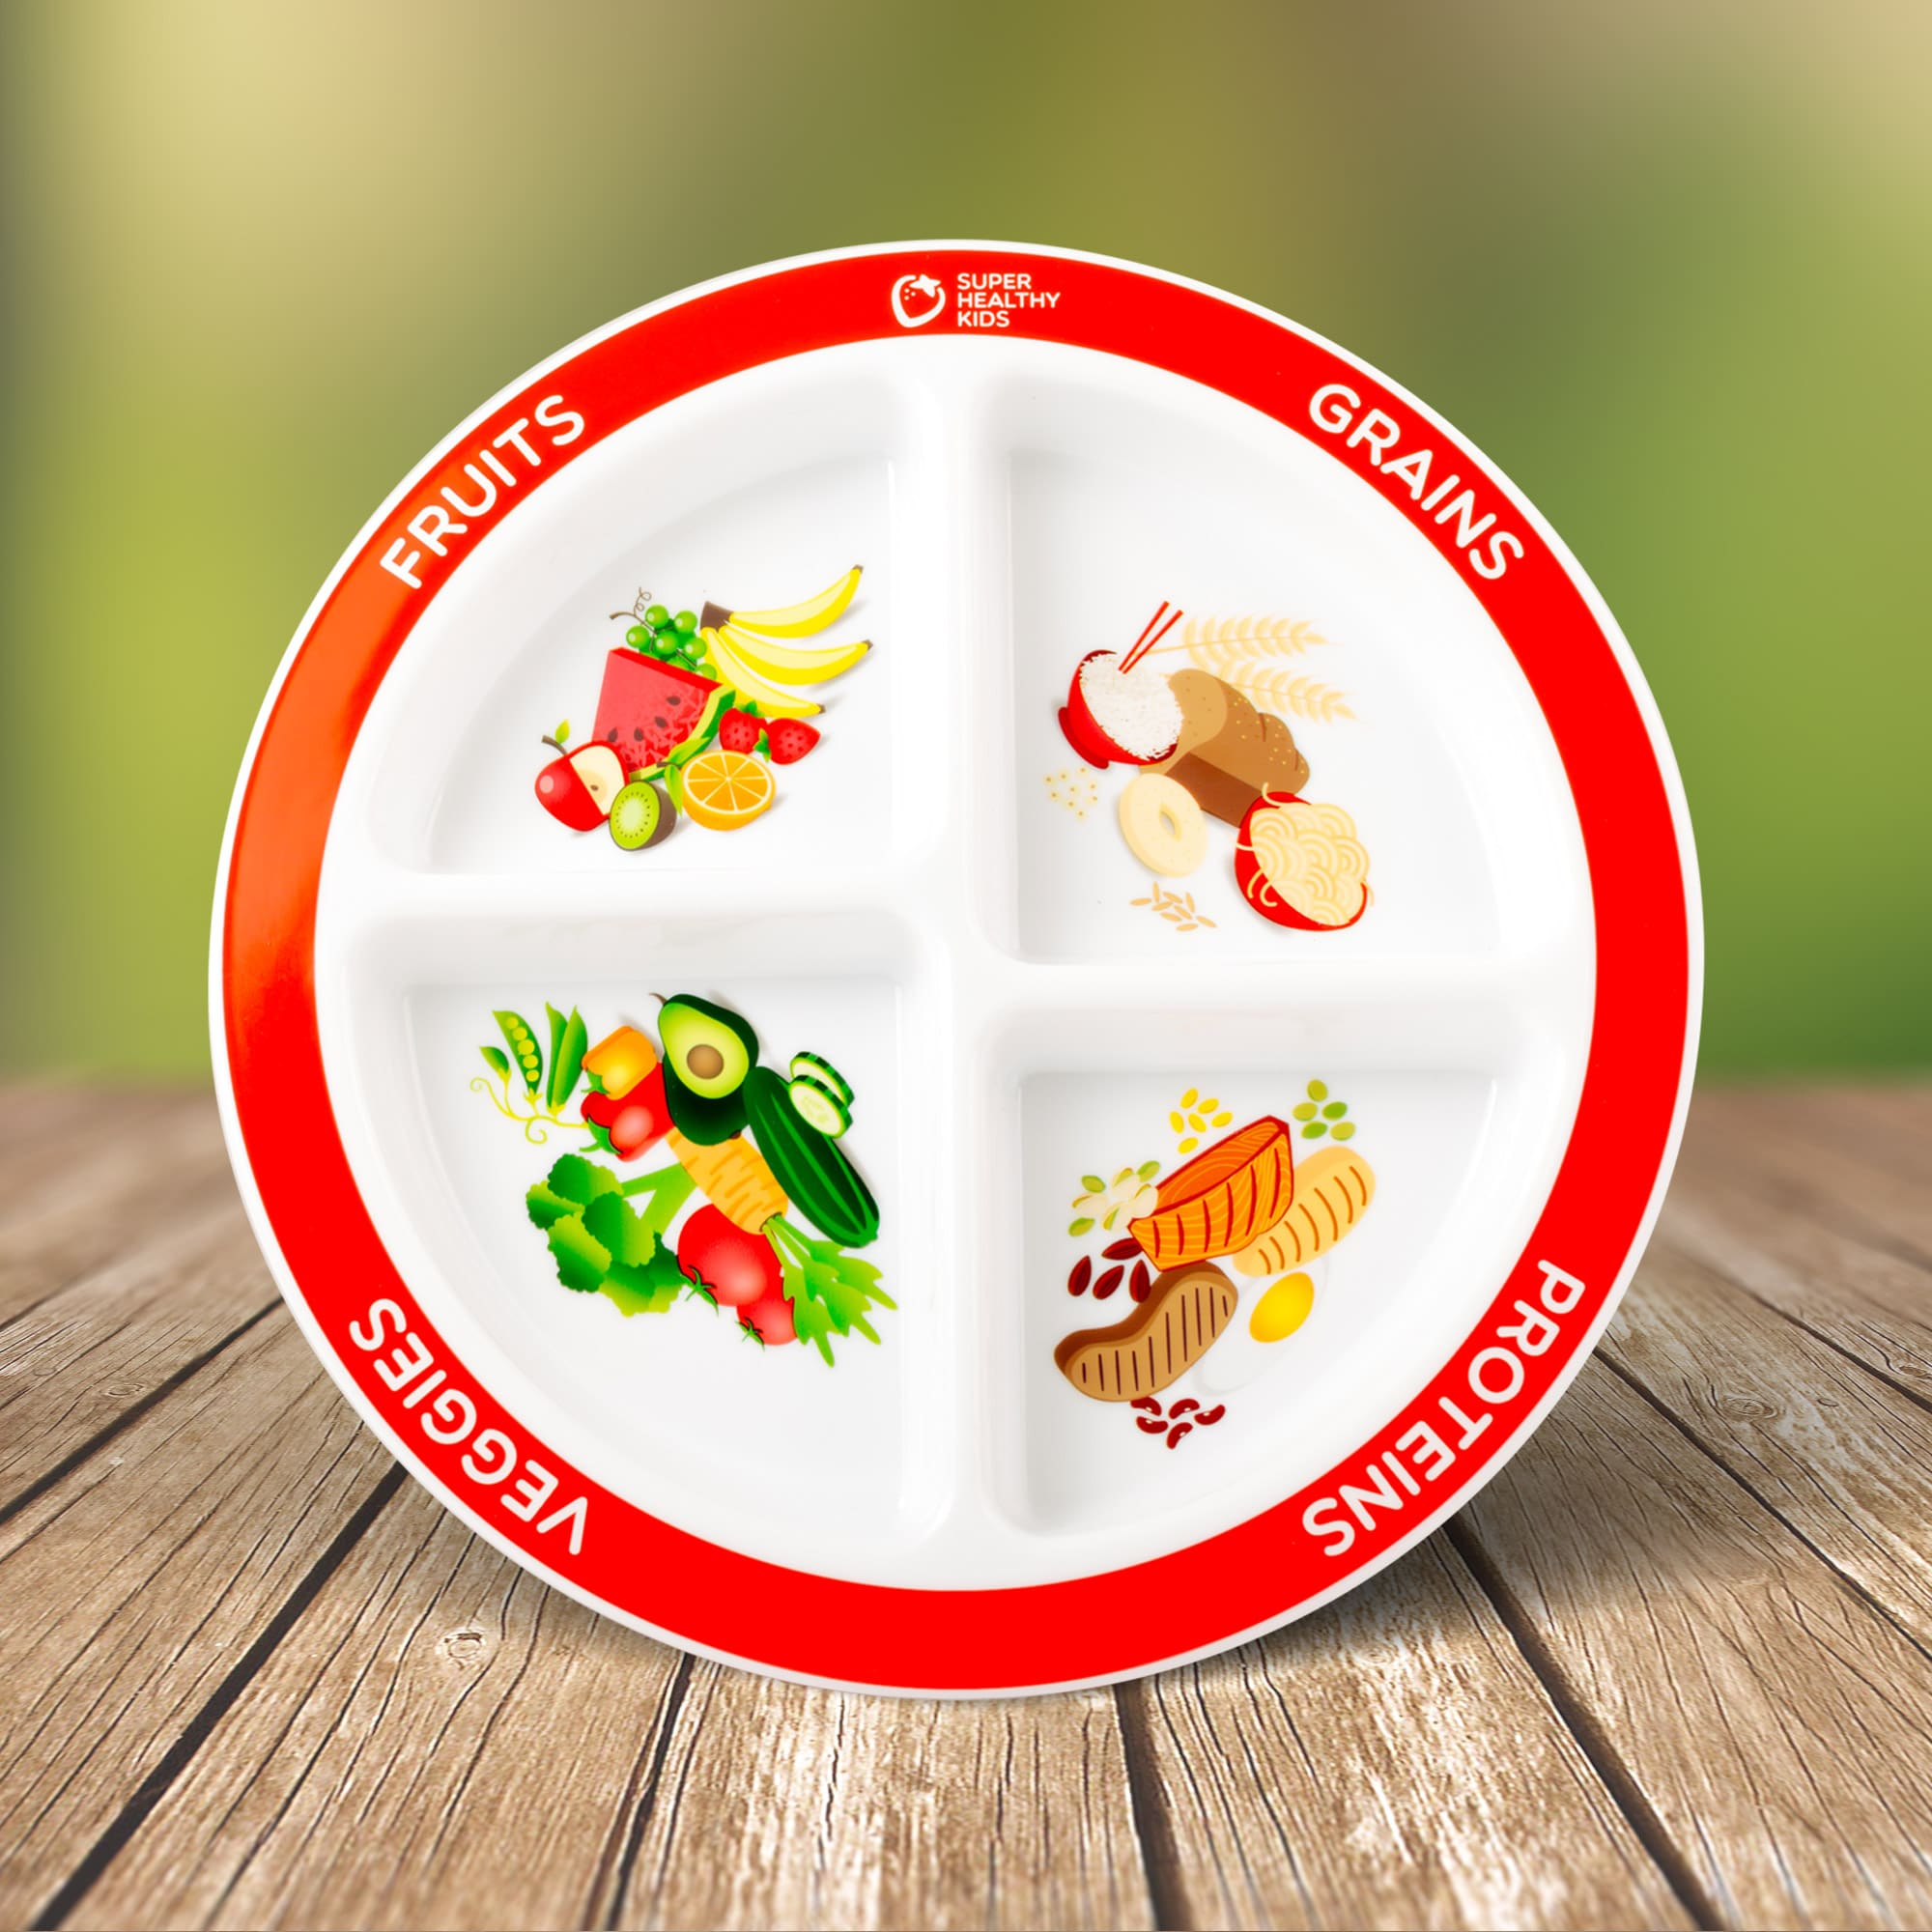 portion control plate for kids for reaching health goals